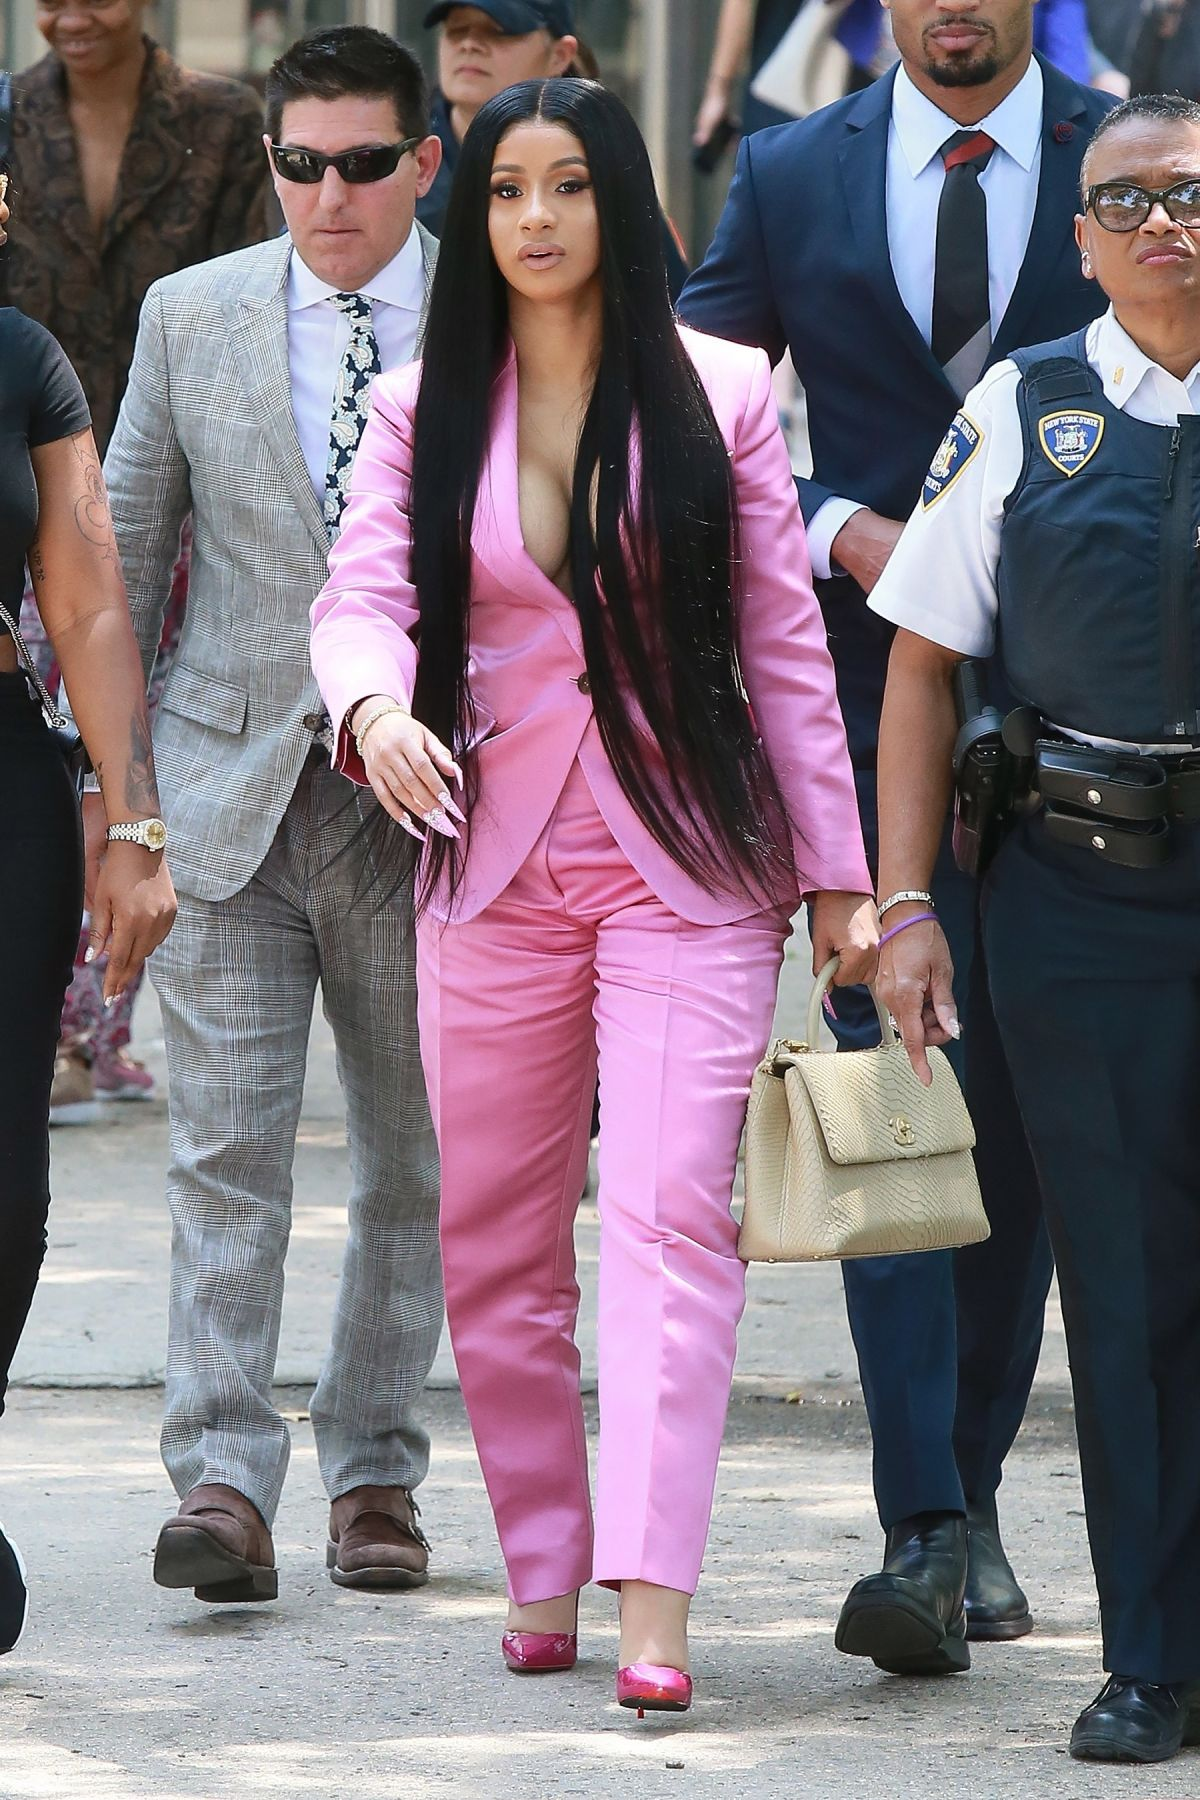 Cardi B Court: CARDI B Arrives At Her Trial At Queens Criminal Court In